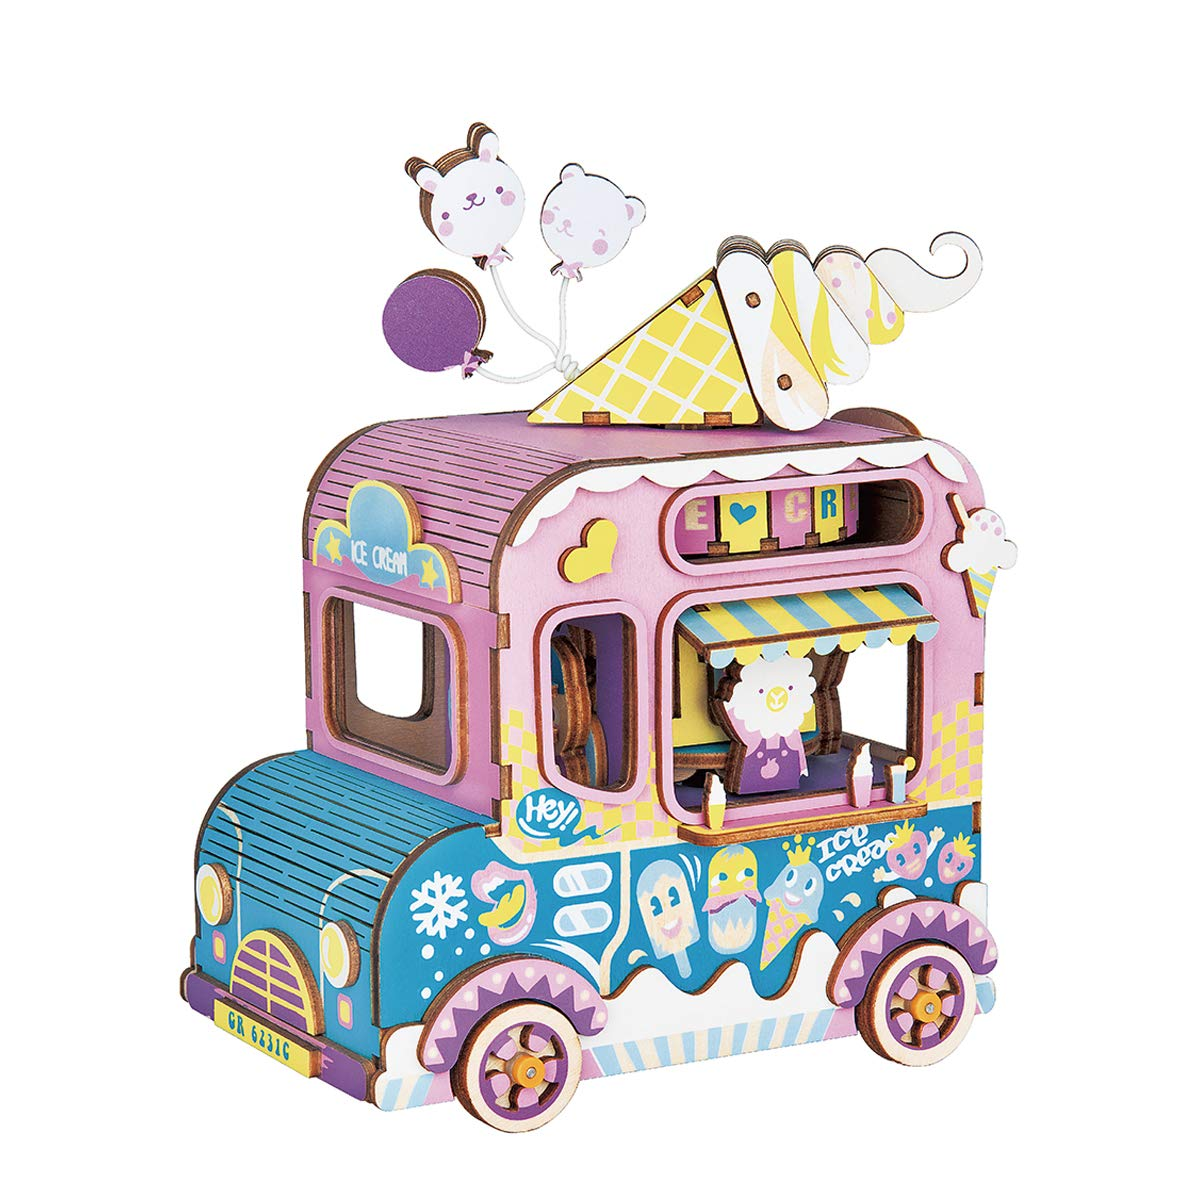 Rolife Dream Hand Crank Music Box with Inner Machine-3D Wooden Puzzle DIY Assemble Toys-Creative Gift for Christmas/Birthday/Valentine's Day for Kids Children Girl Friends (Ice Cream Car)